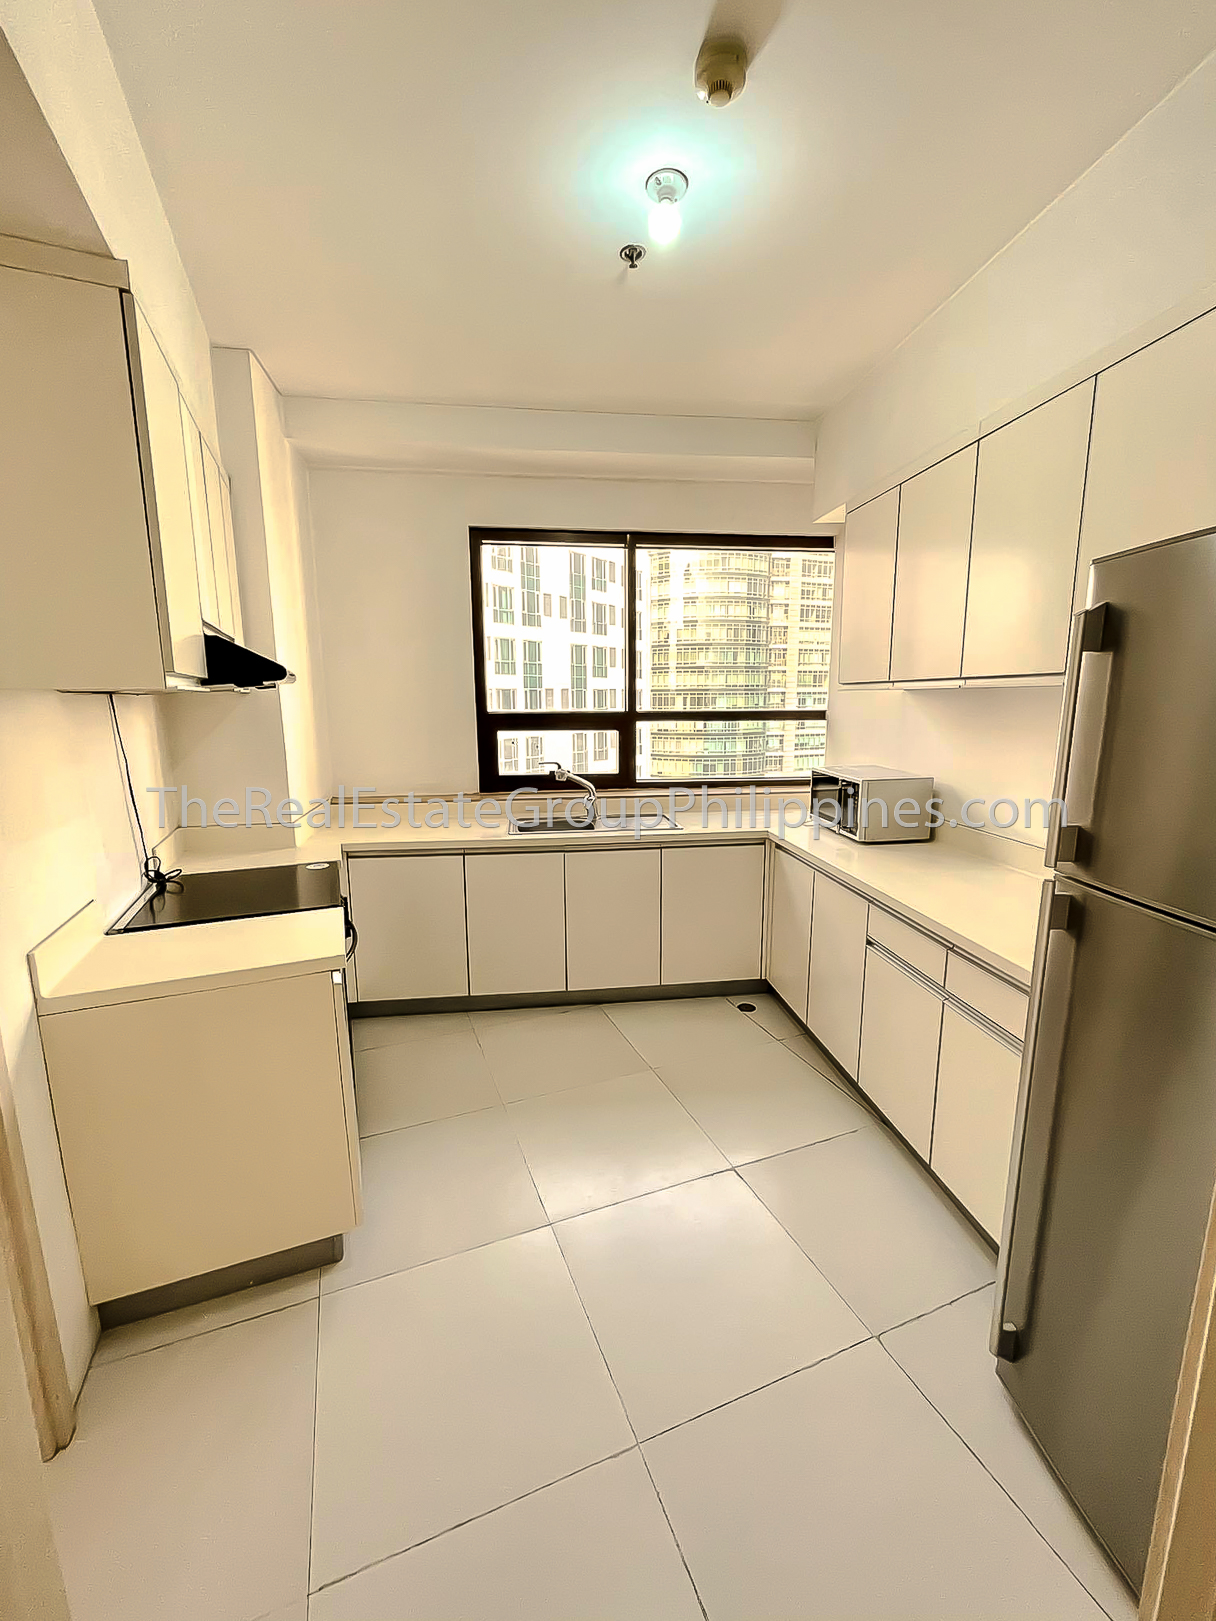 2BR Bi-Level Condo For Rent, Icon Residences Tower 1, BGC-3